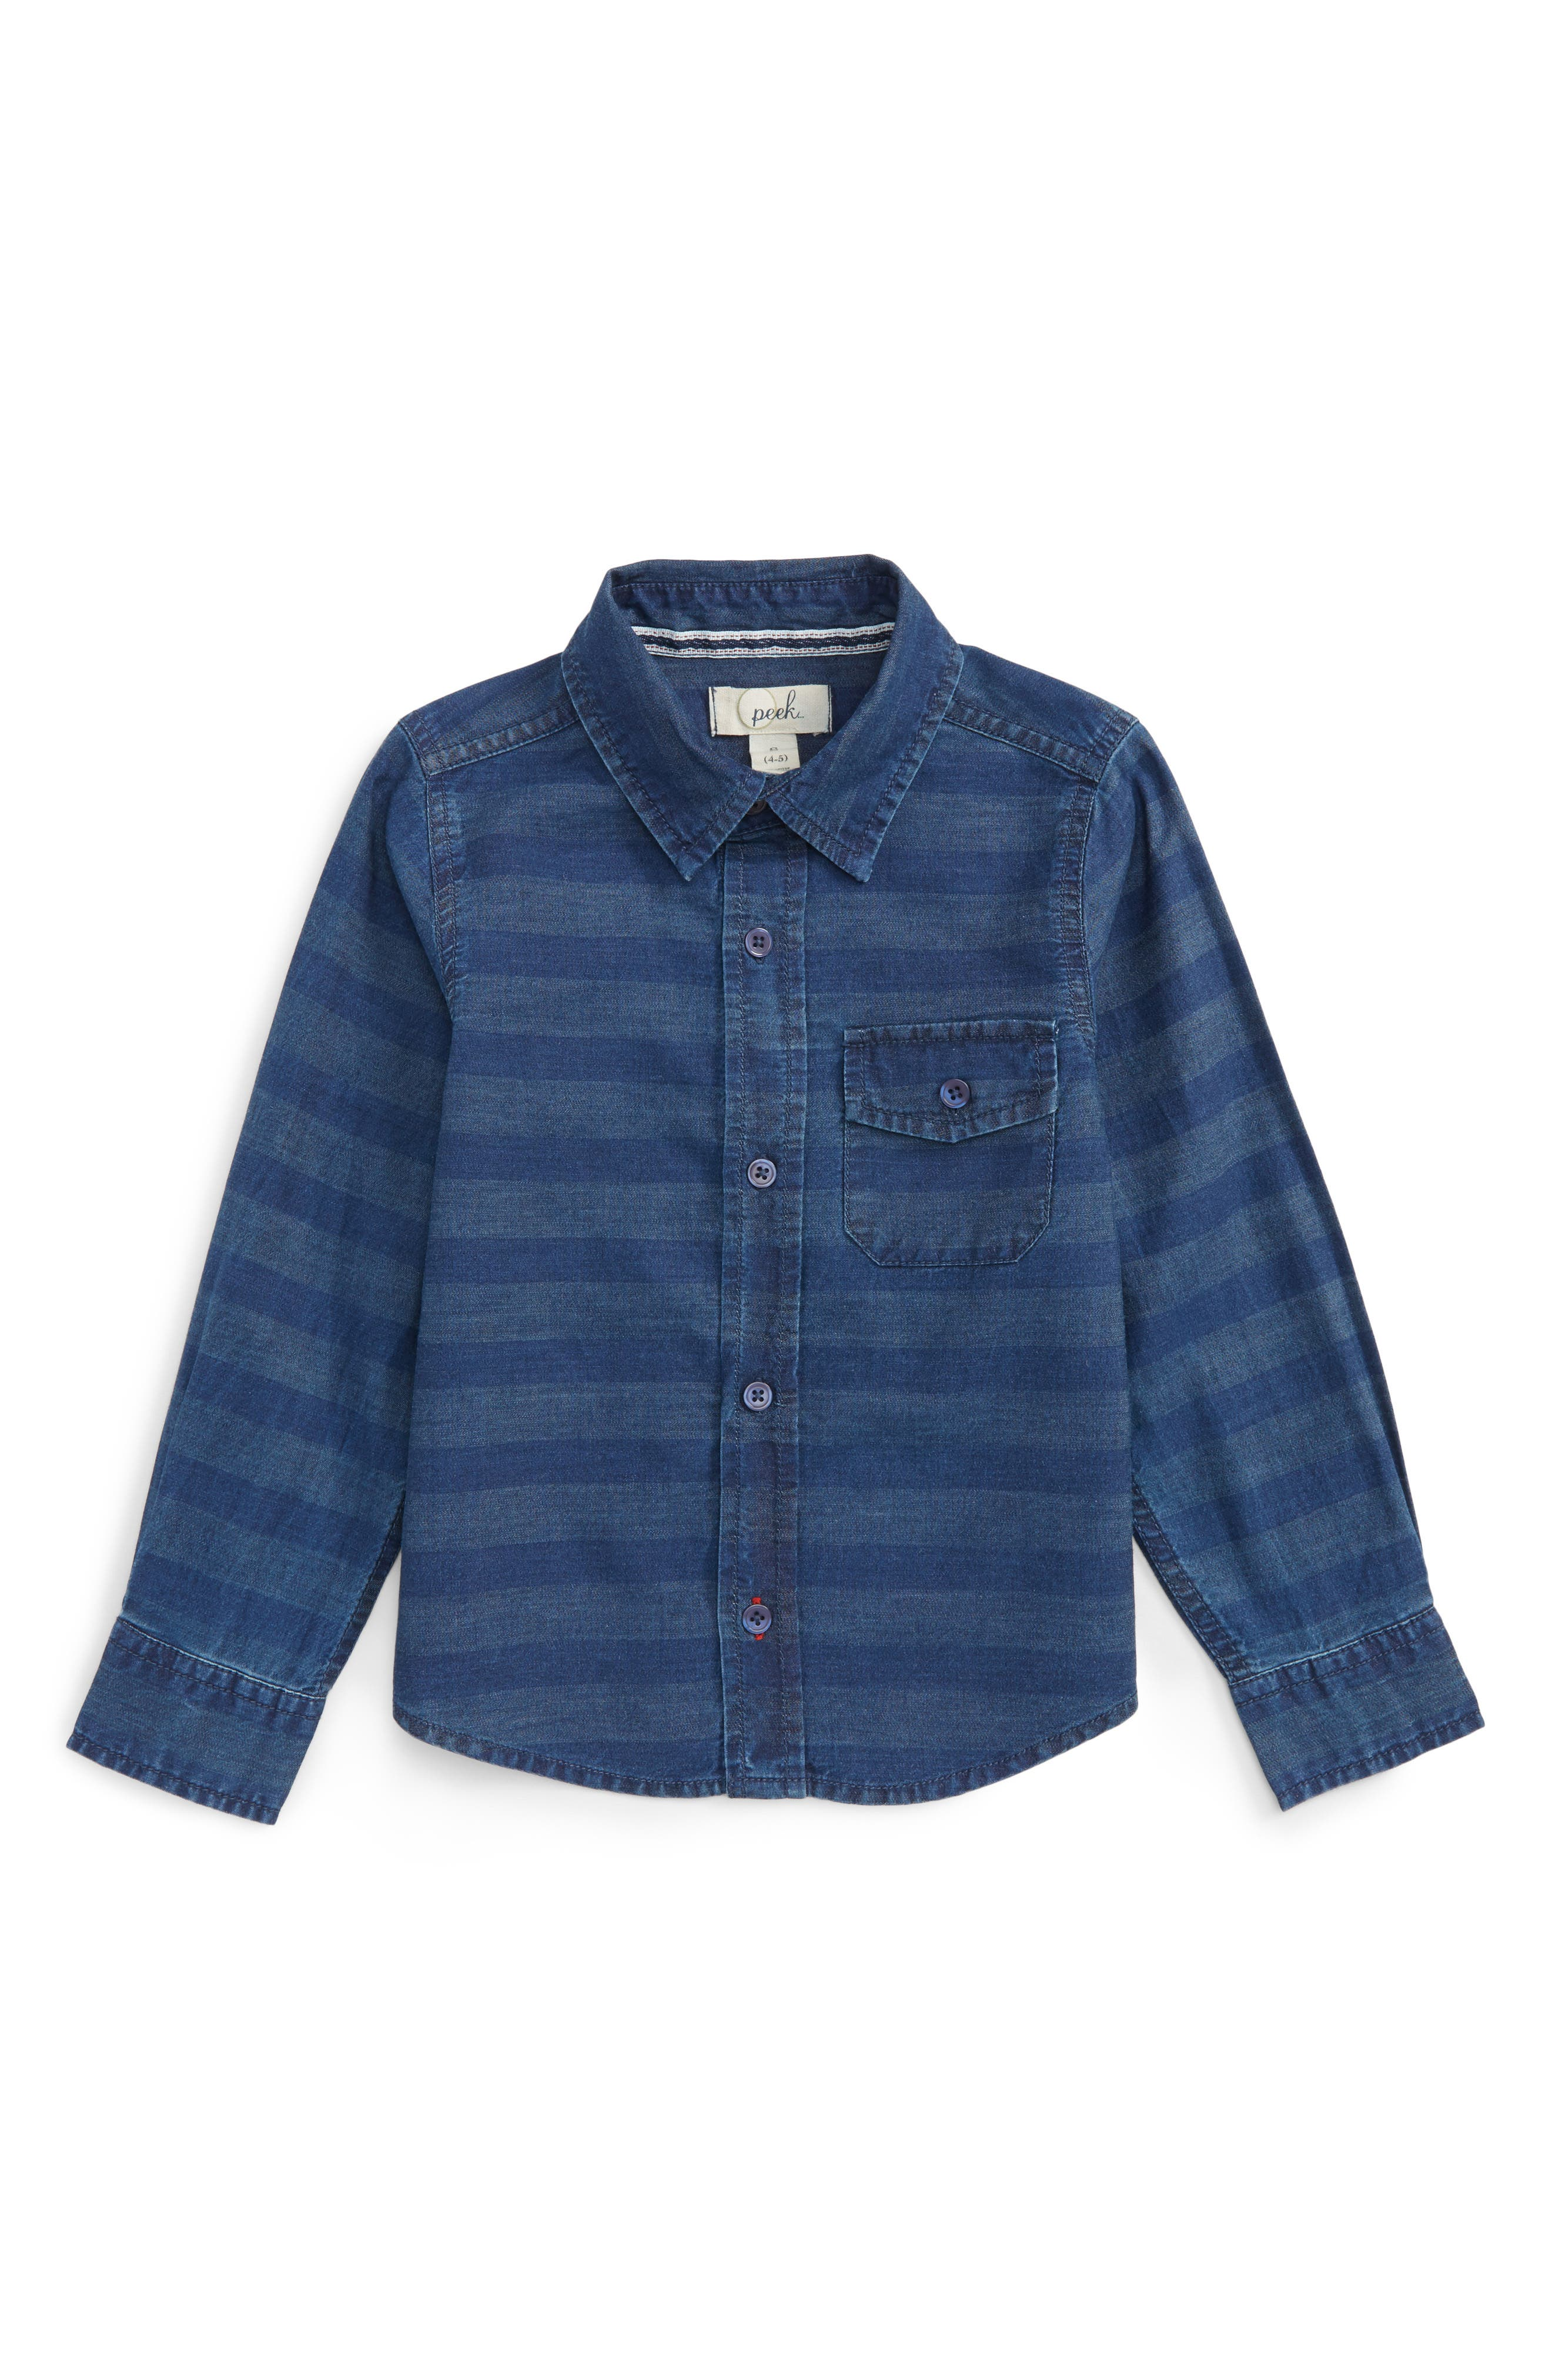 Peek Aiden Stripe Chambray Shirt (Toddler Boys, Little Boys & Big Boys)